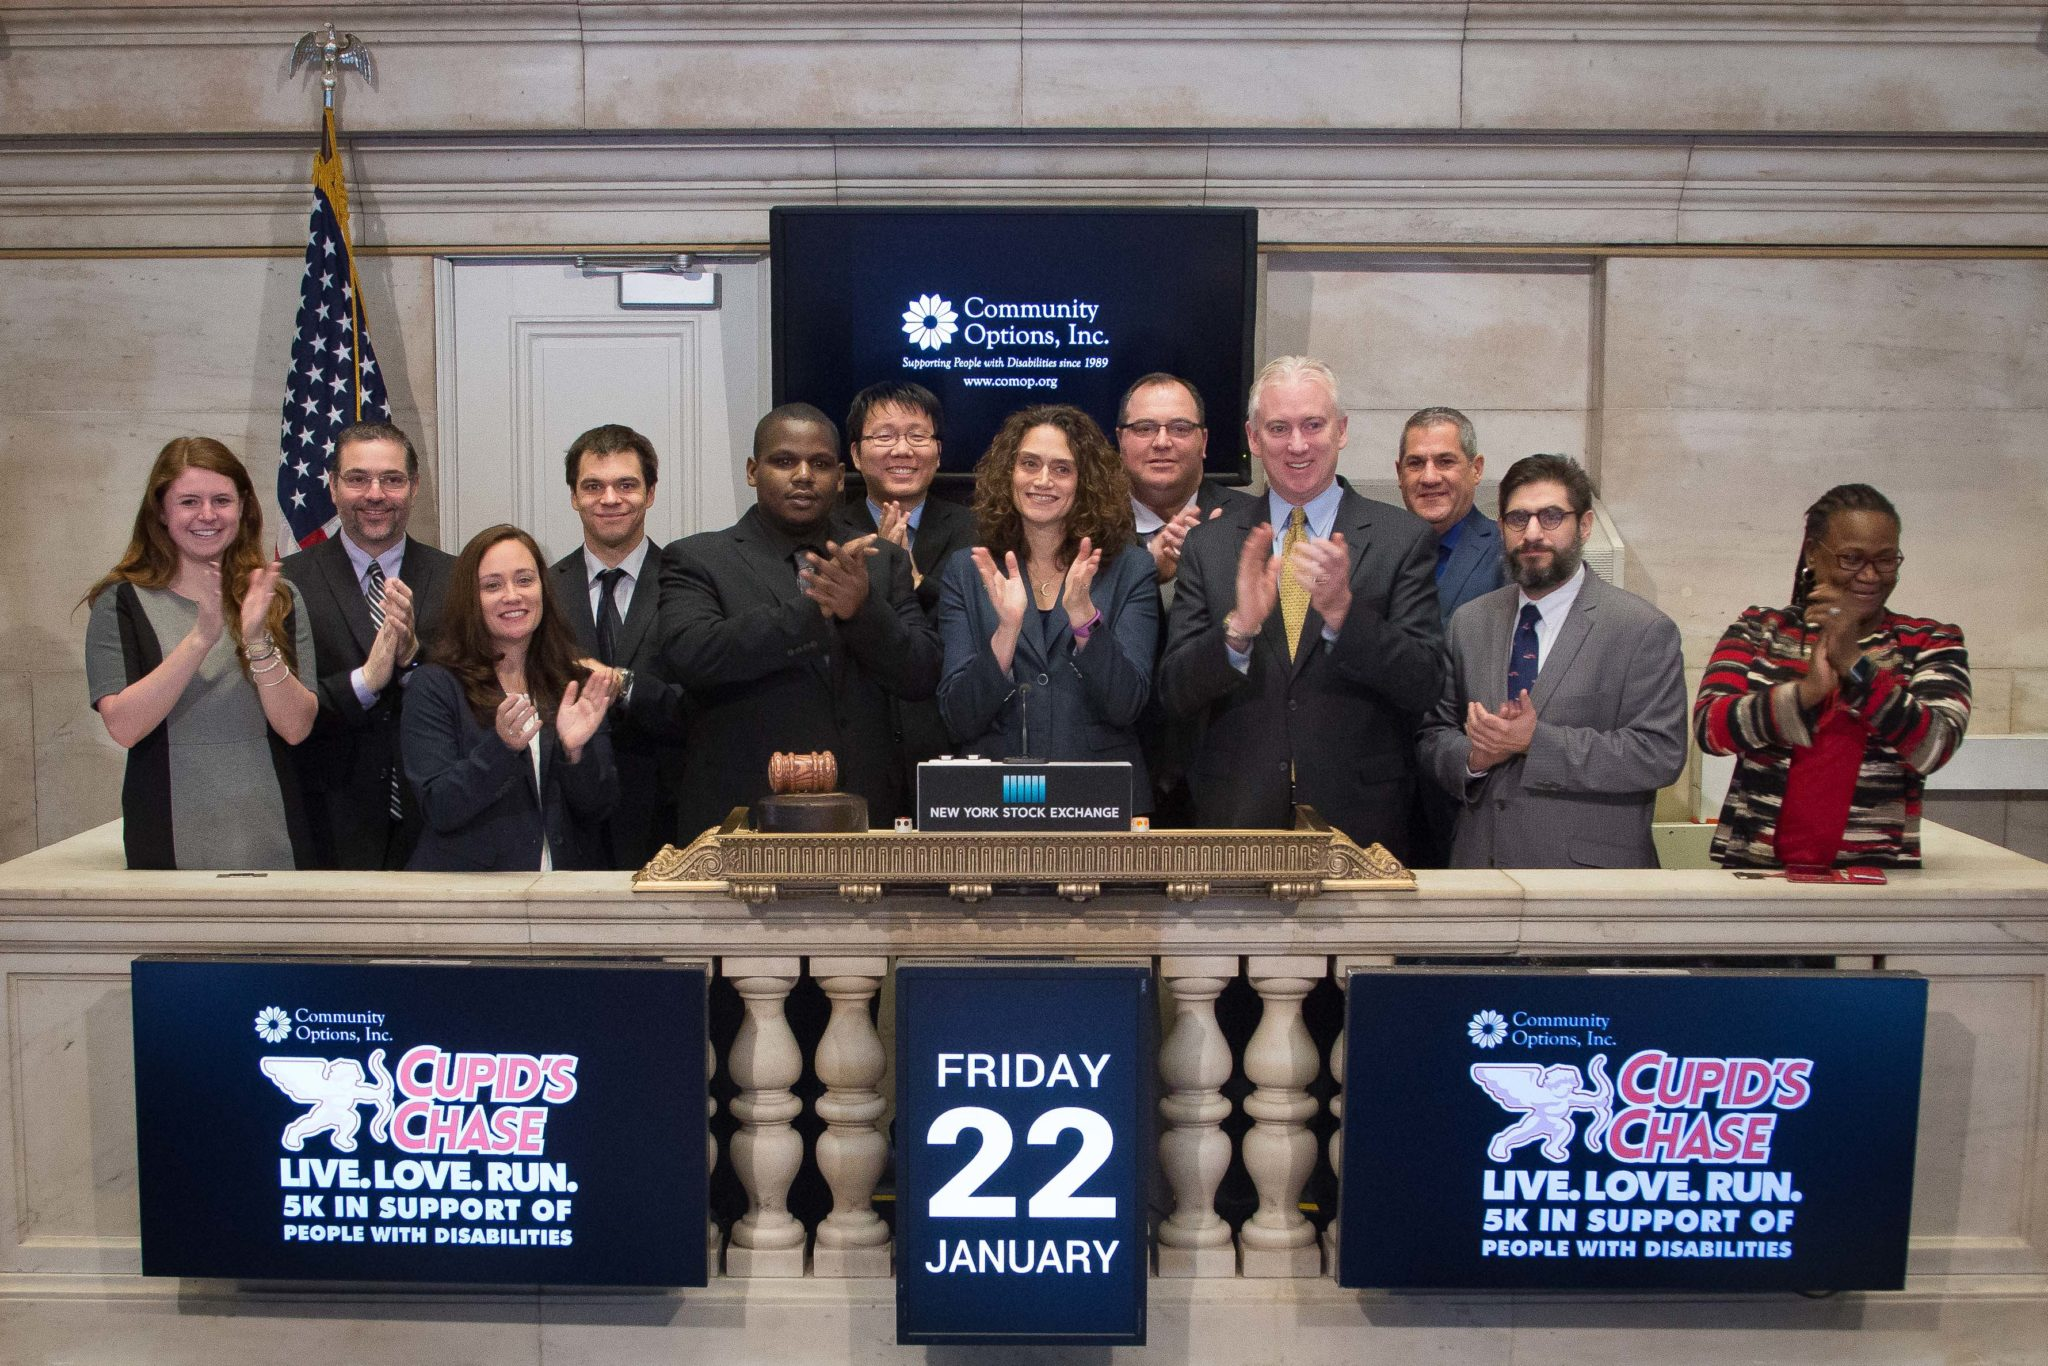 Robert Stack, President of Community Options, Inc., selected Roy King to ring the opening bell at the New York Stock Exchange, Friday January 22, 2016. hoto Credit: NYSE/Valerie Caviness